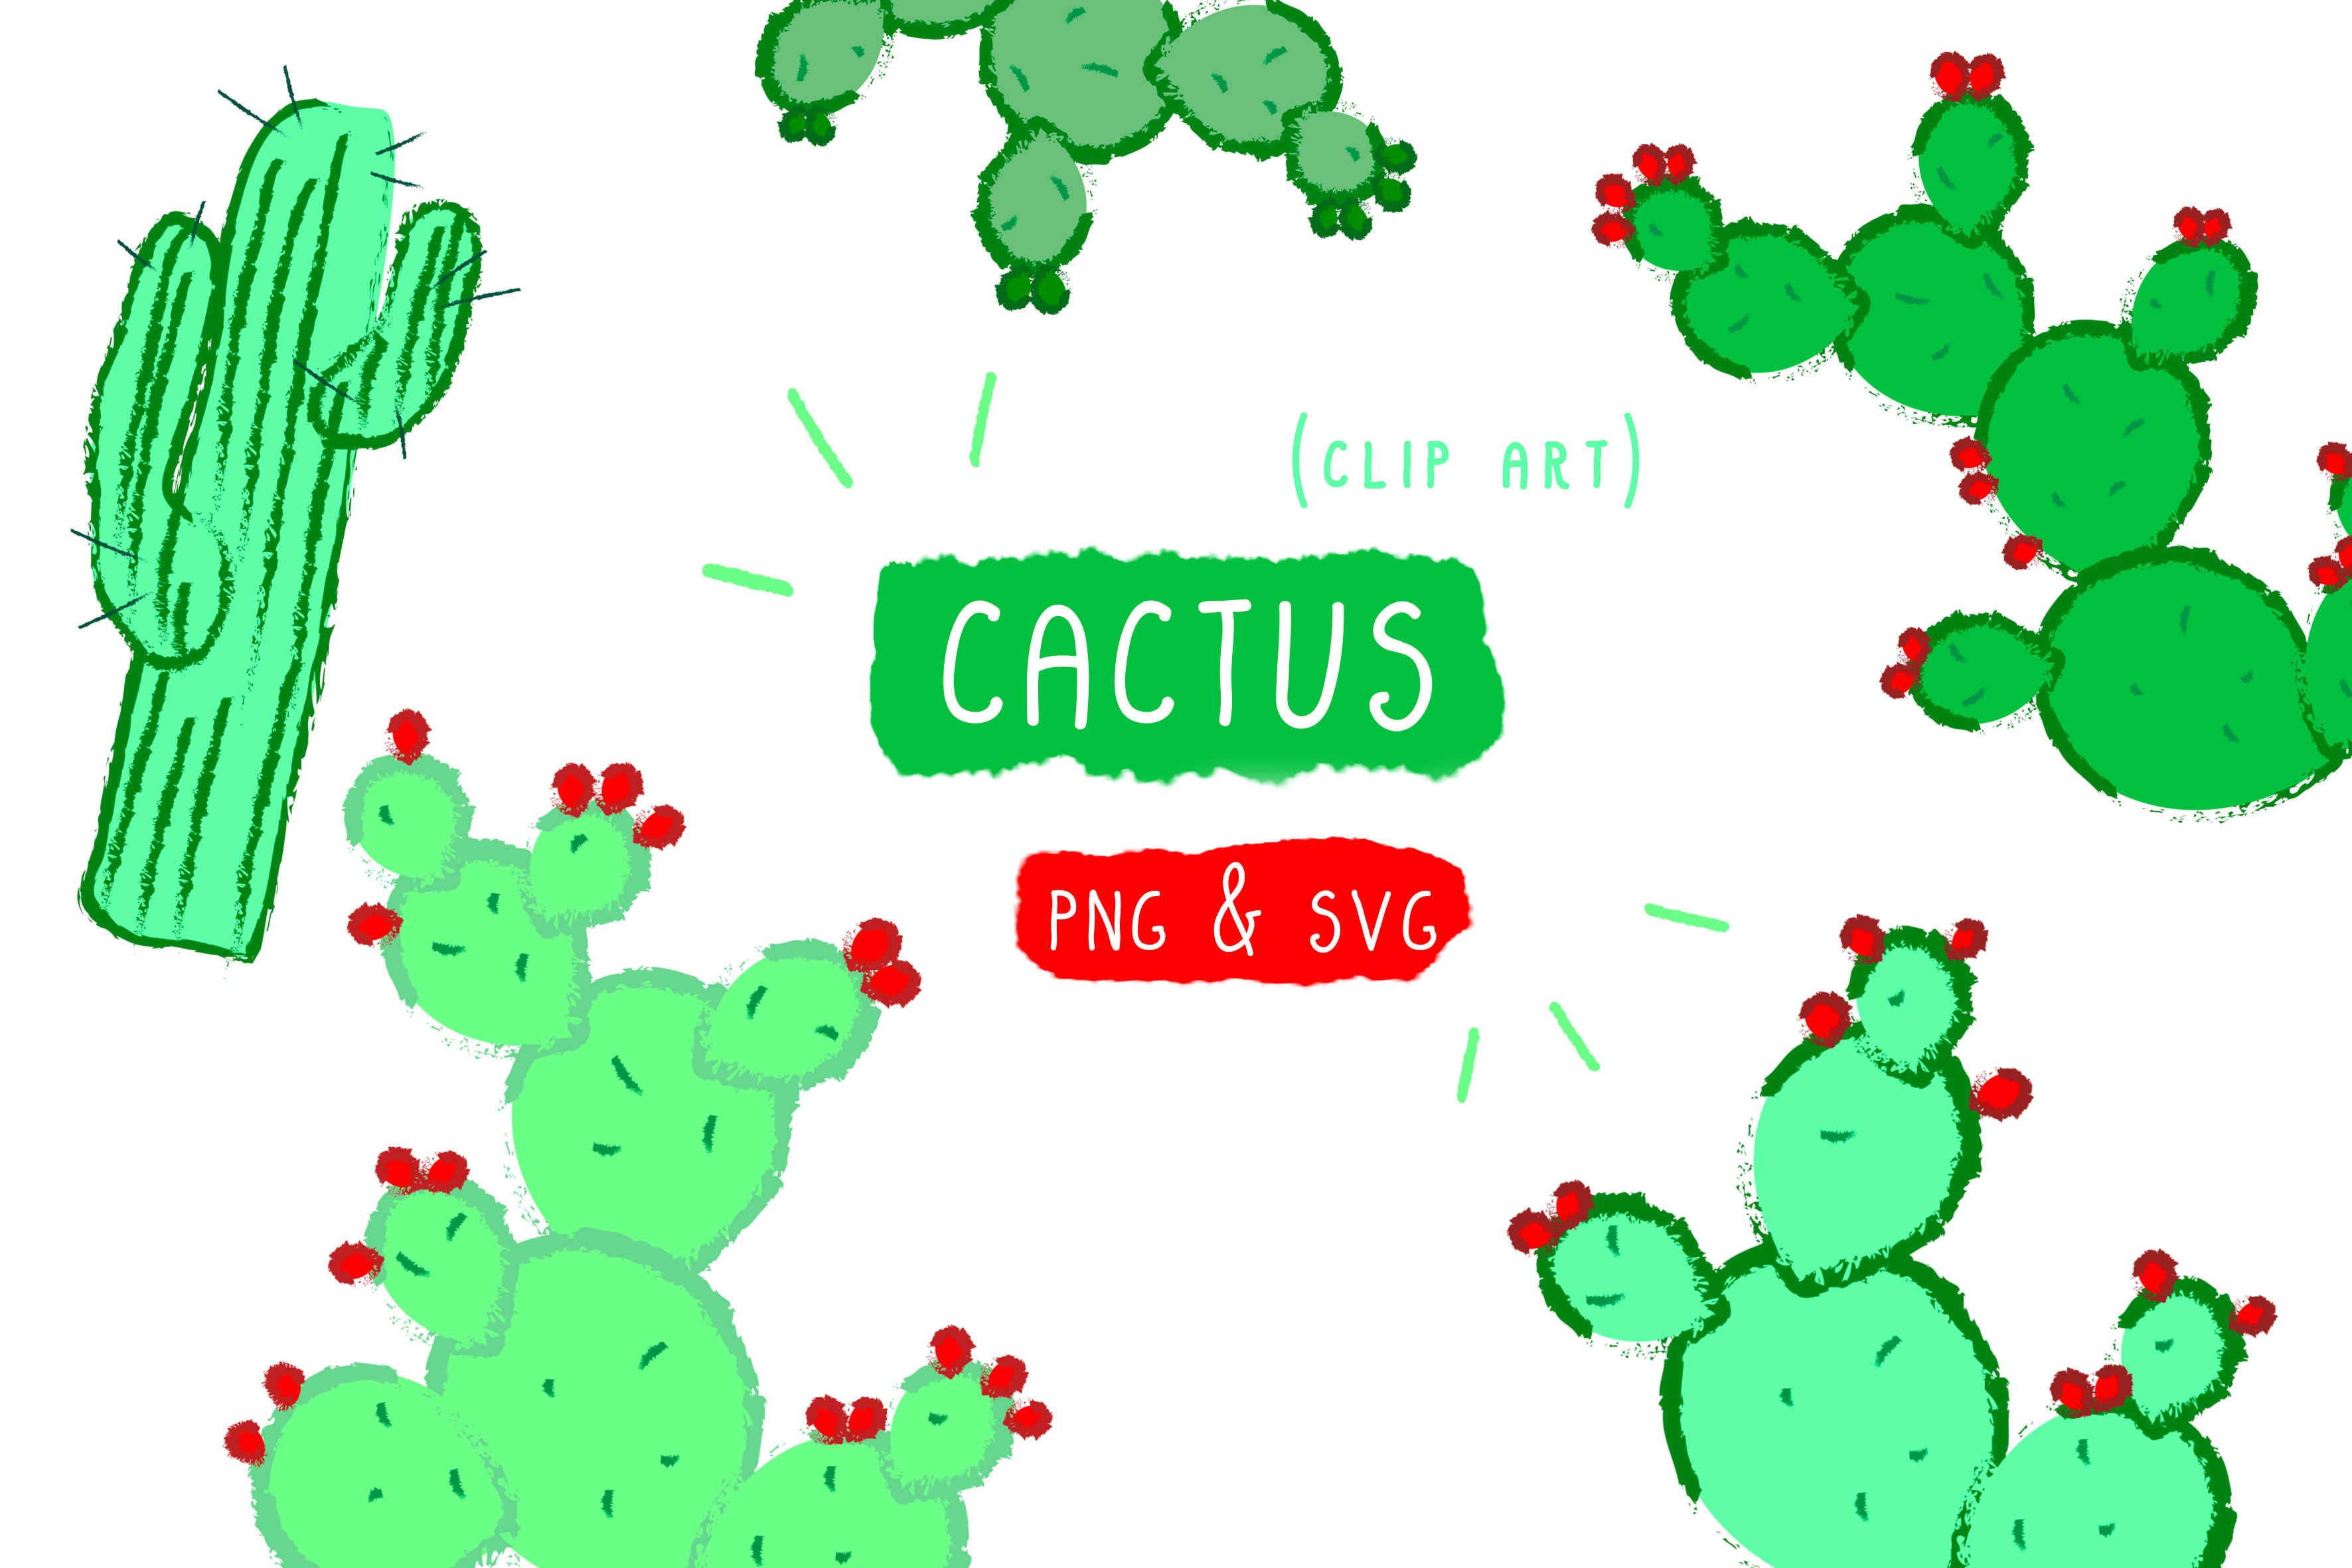 Download Free Cactus Clip Art Graphic By Inkclouddesign Creative Fabrica for Cricut Explore, Silhouette and other cutting machines.